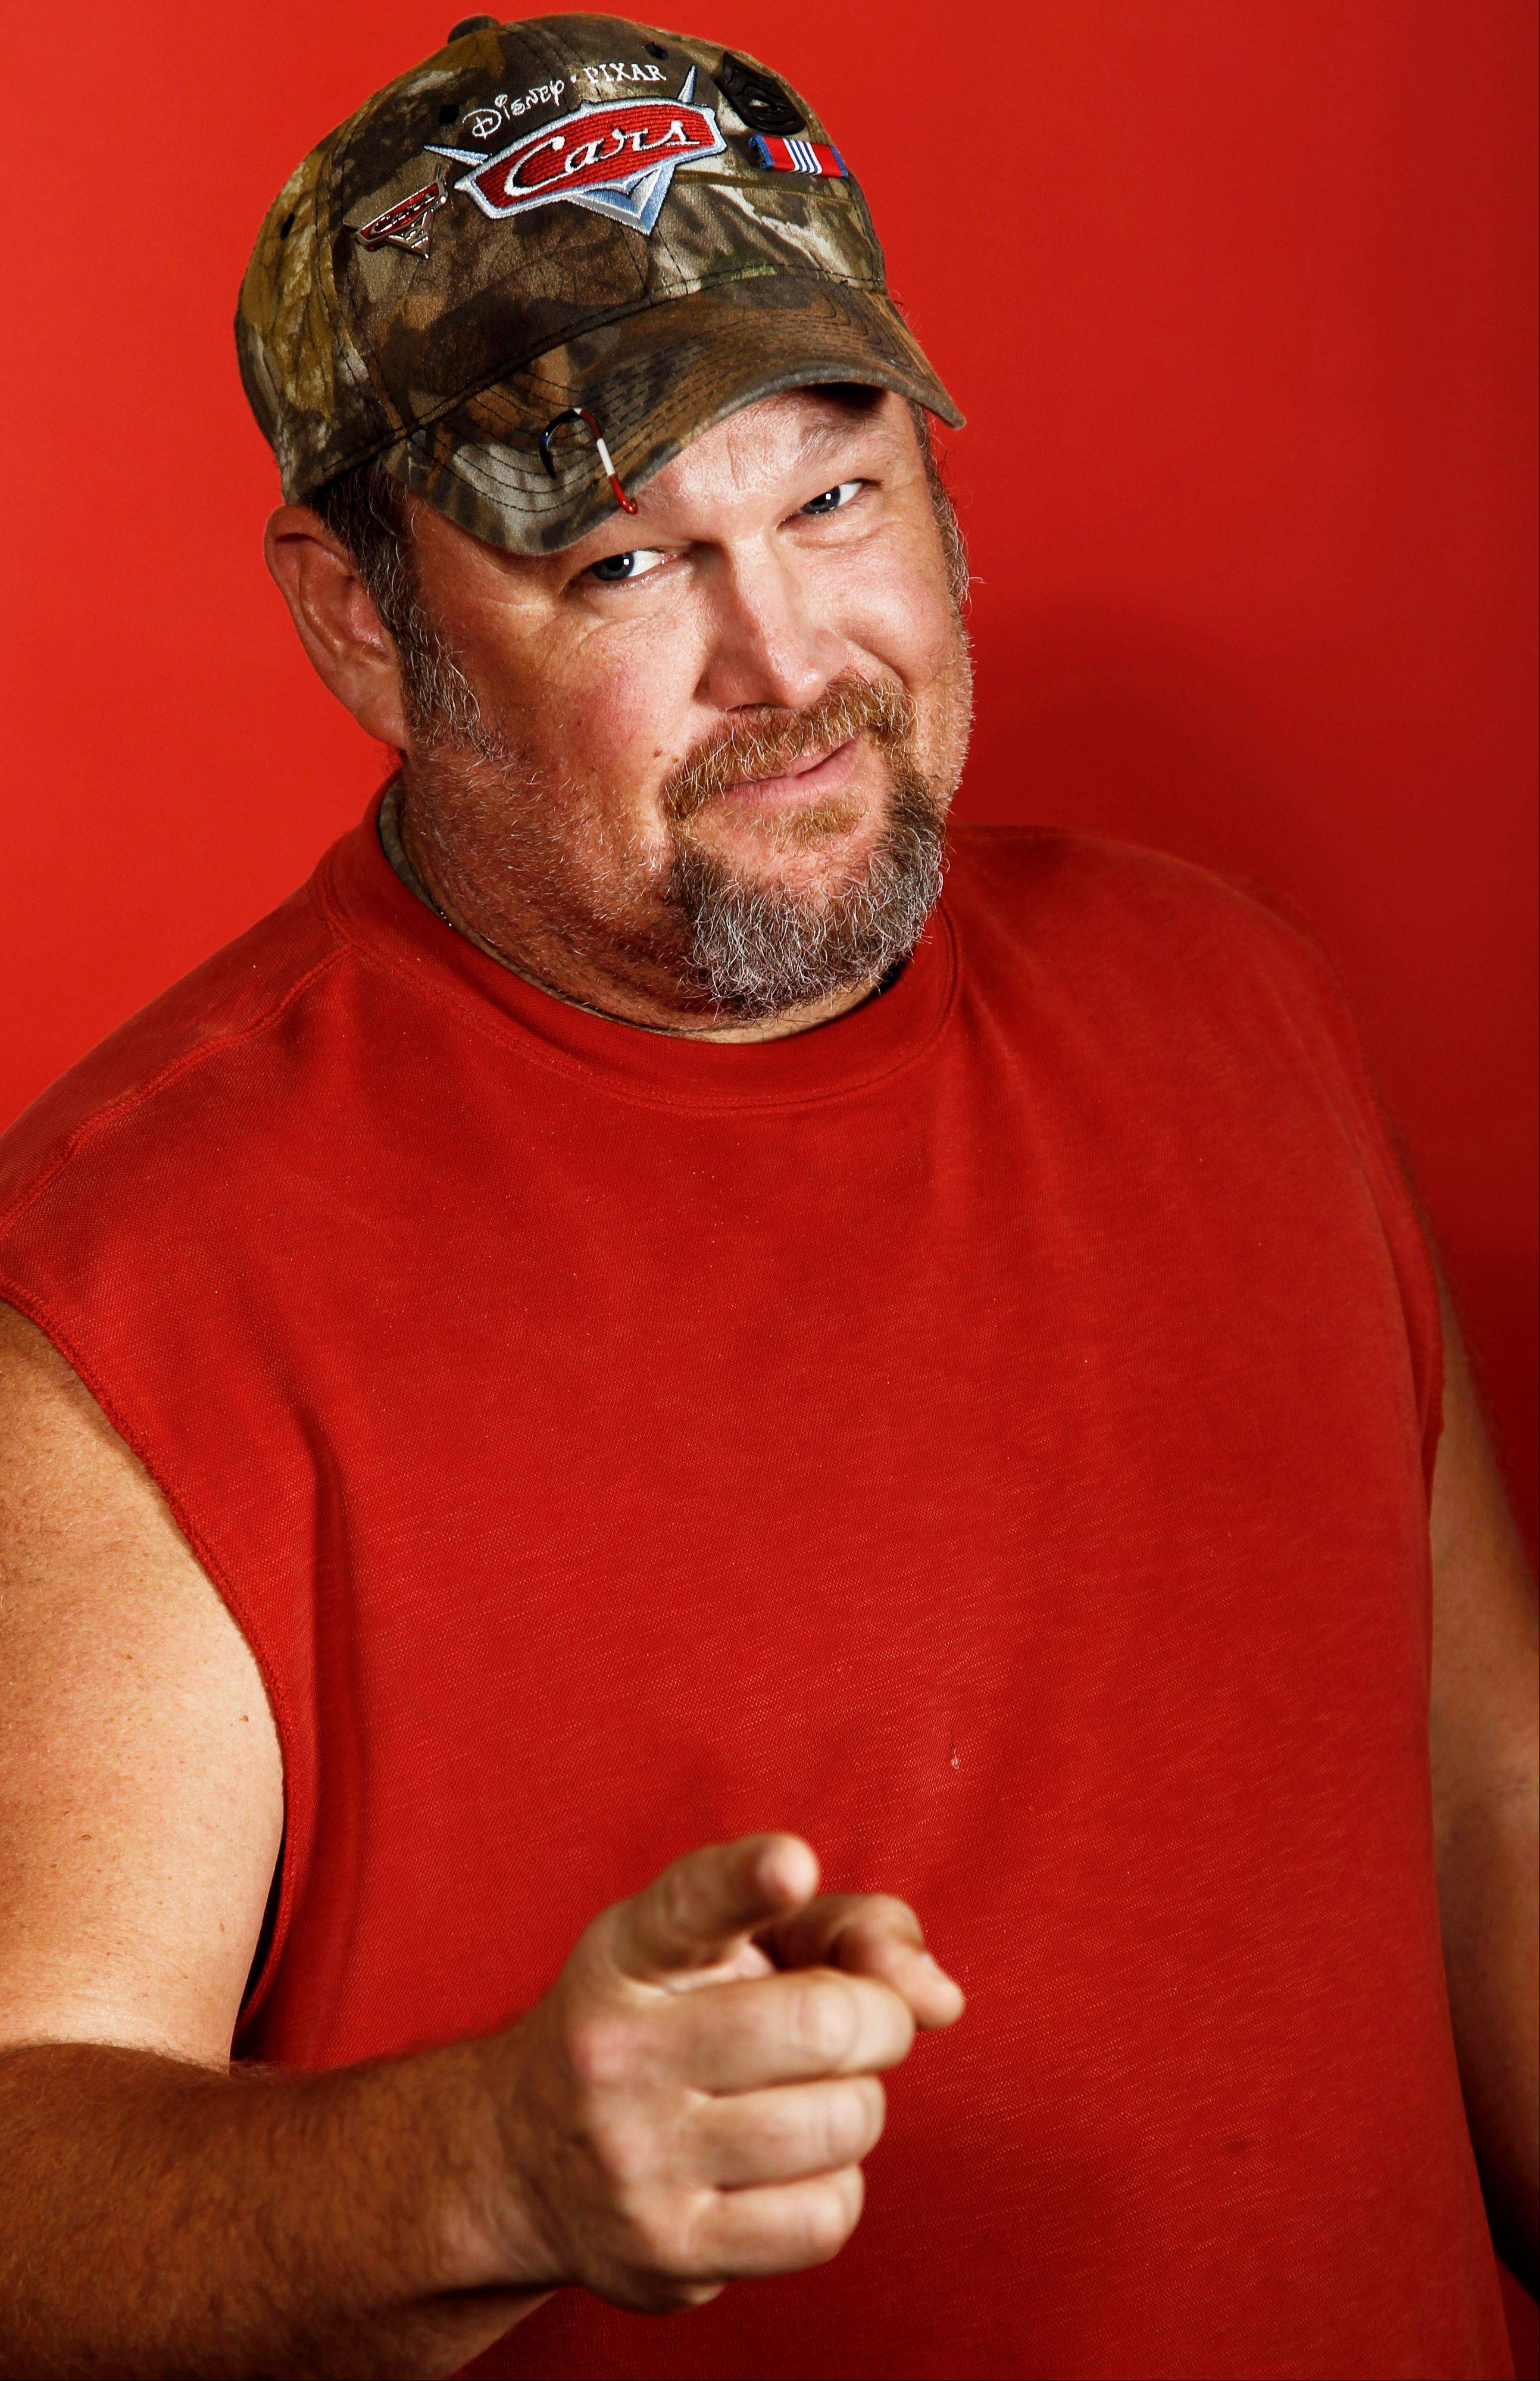 Larry the Cable Guy performs two comedy shows at the Paramount Theatre in Aurora on Saturday, Oct. 19.